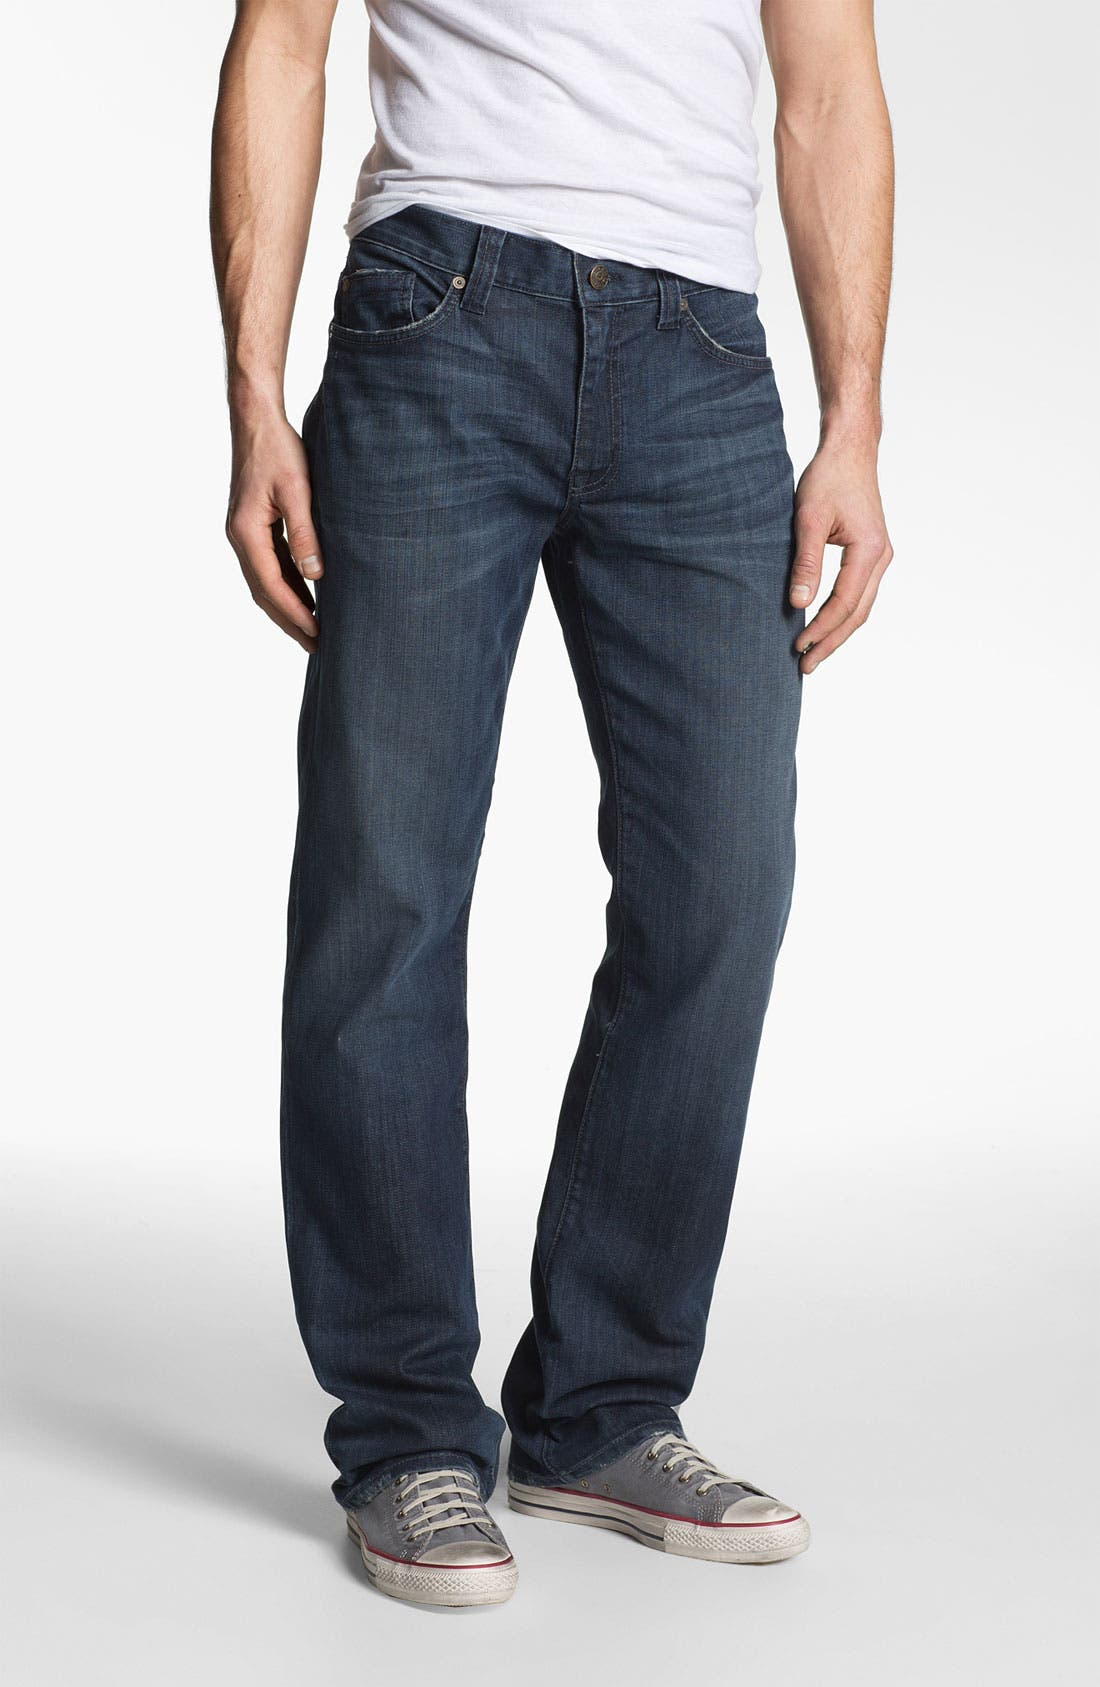 Alternate Image 1 Selected - Fidelity Denim '5011' Straight Leg Jeans (Town Valley Wash)